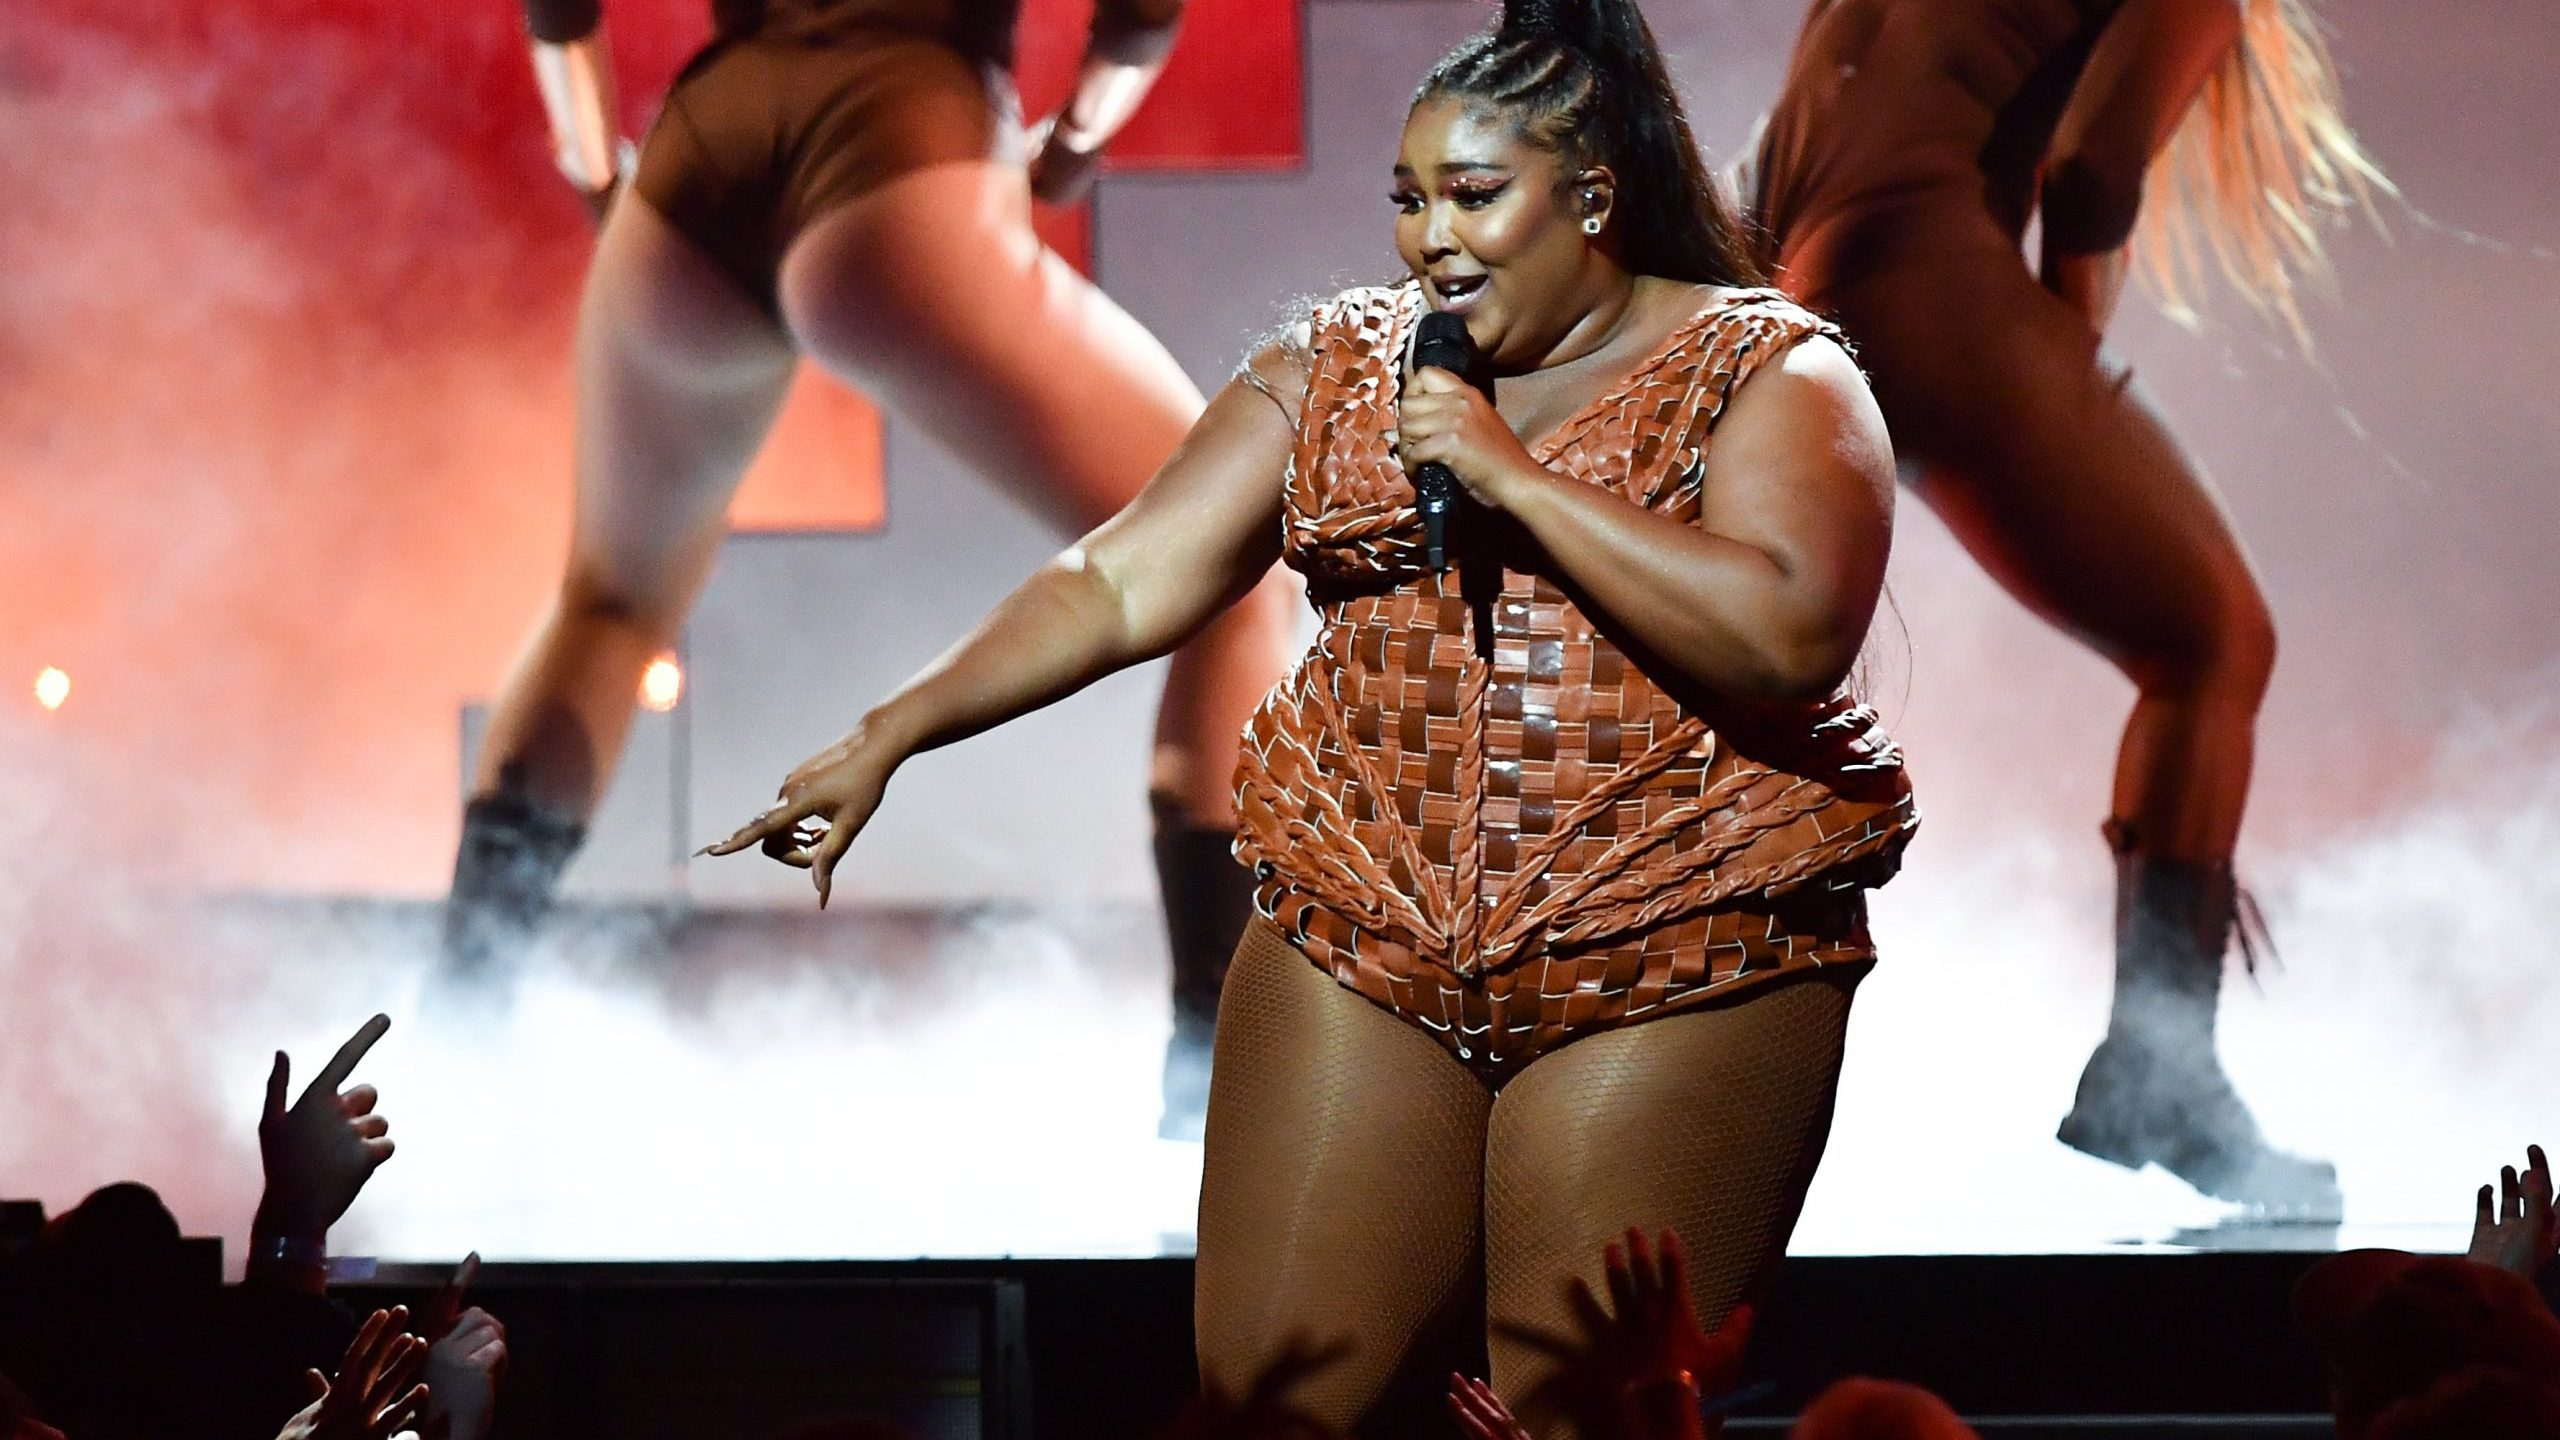 Lizzo performs during the BRIT Awards 2020 at the O2 Arena on Feb. 18, 2020 in London, England. (Gareth Cattermole/Getty Images)